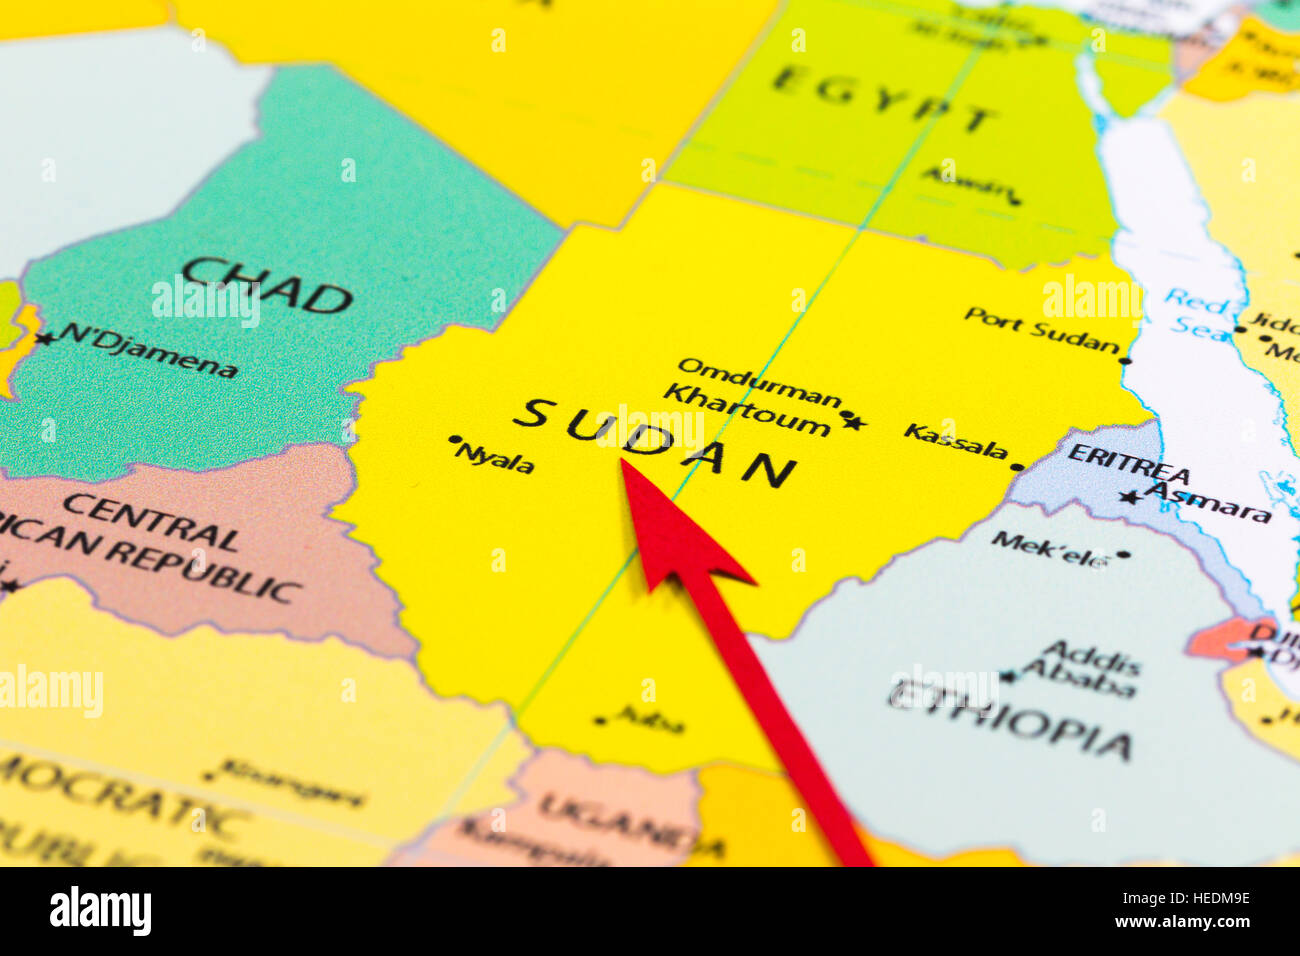 Red Arrow Pointing Sudan On The Map Of Africa Continent Stock - What continent is sudan in